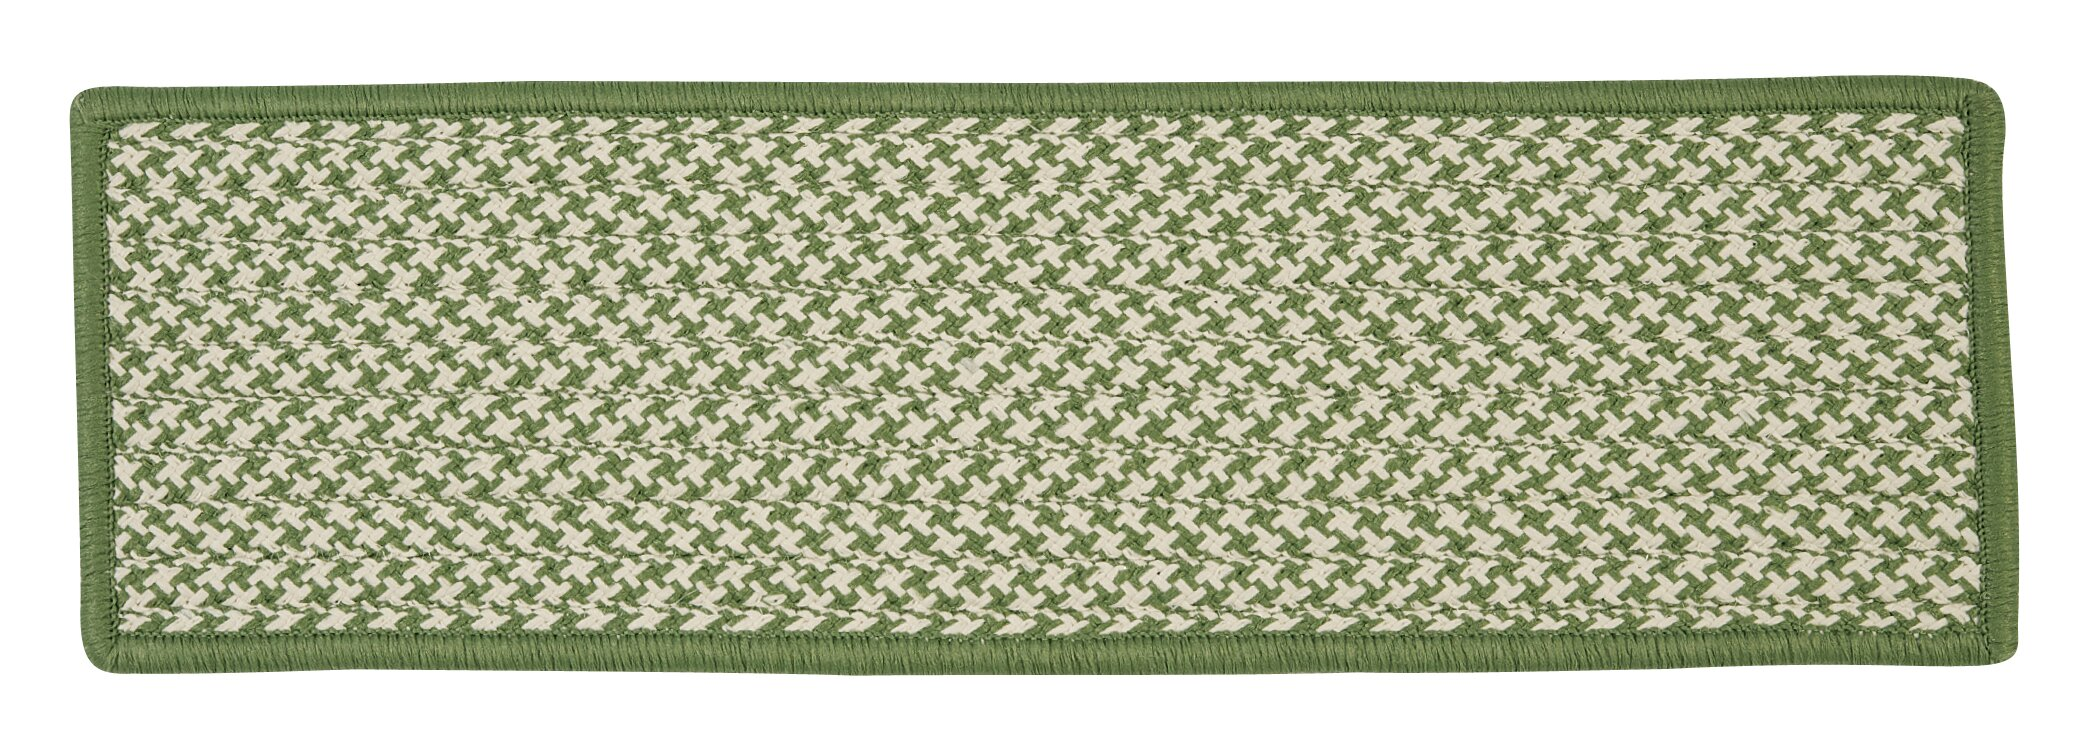 Outdoor Houndstooth Tweed Leaf Green Stair Treads